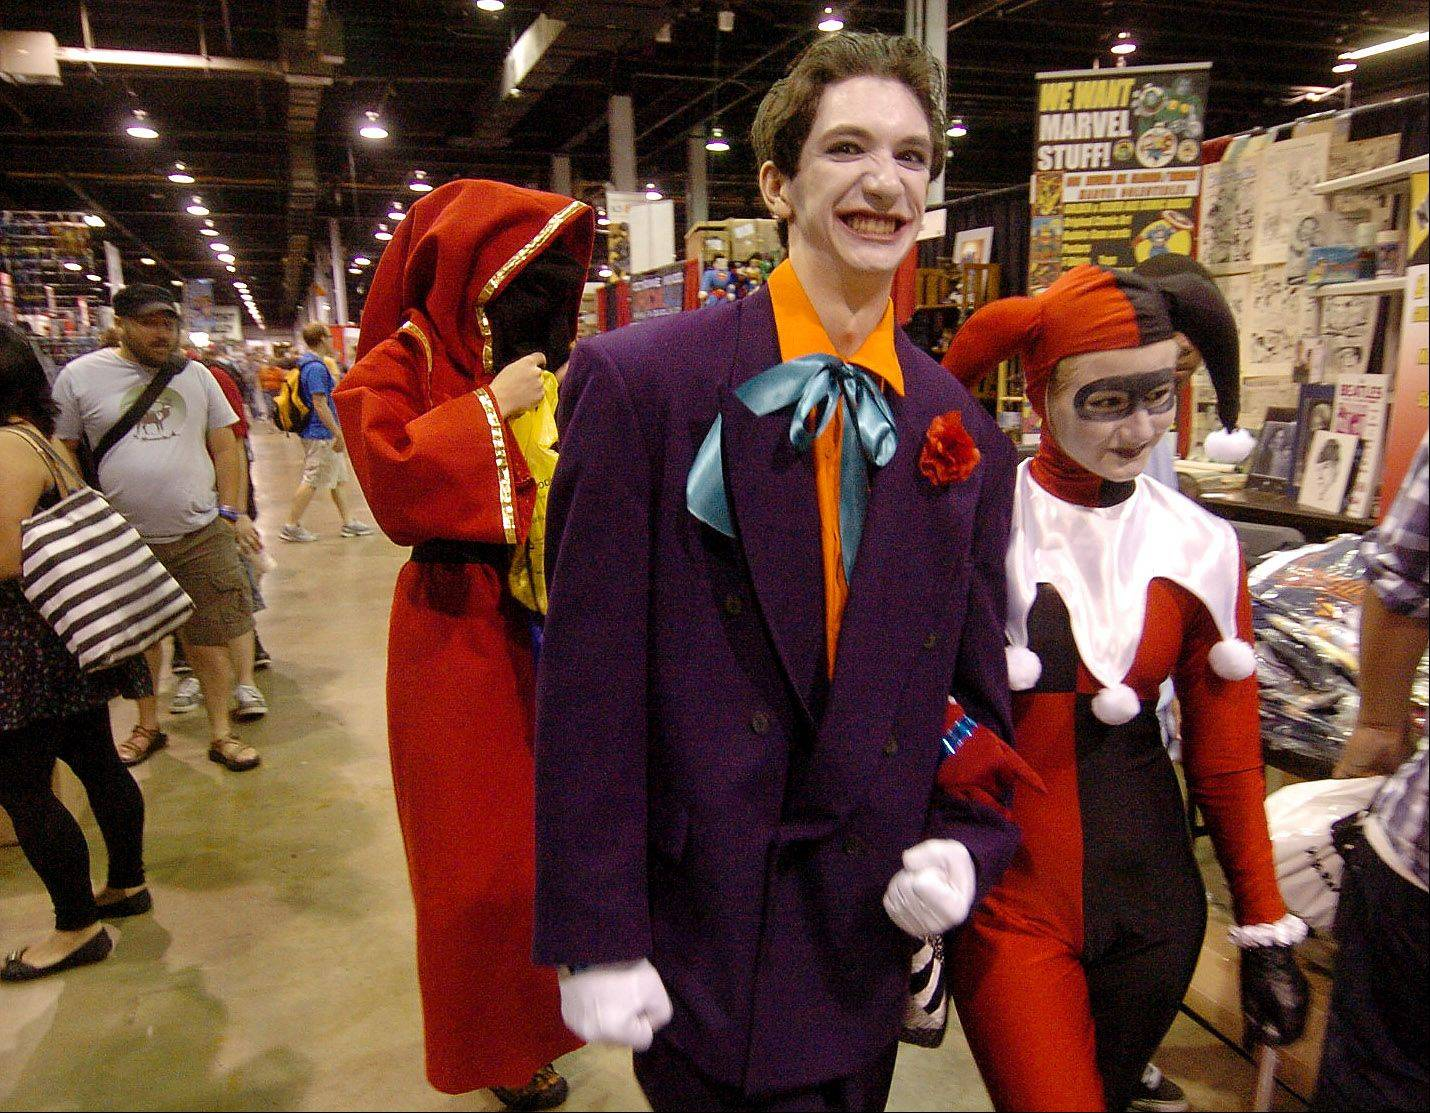 Alex Midlash of Hinsdale as the Joker and Grace Gill of Clarendon Hills as Harley Quinn roam the Wizard World Chicago Comic Con.